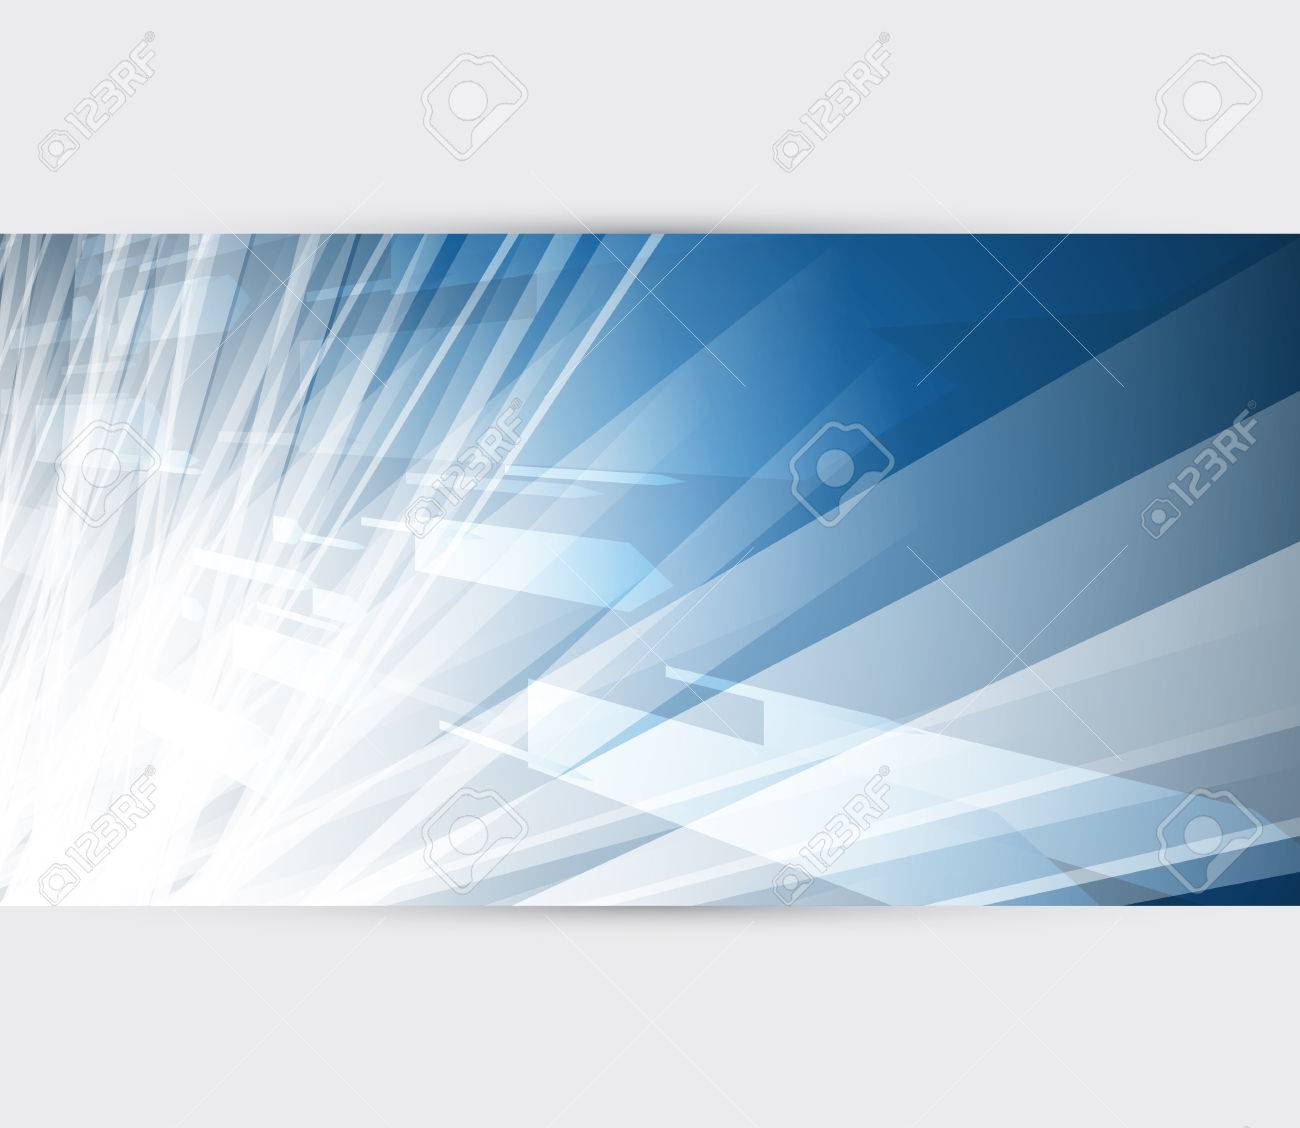 New future technology concept abstract background for business solution - 39521047